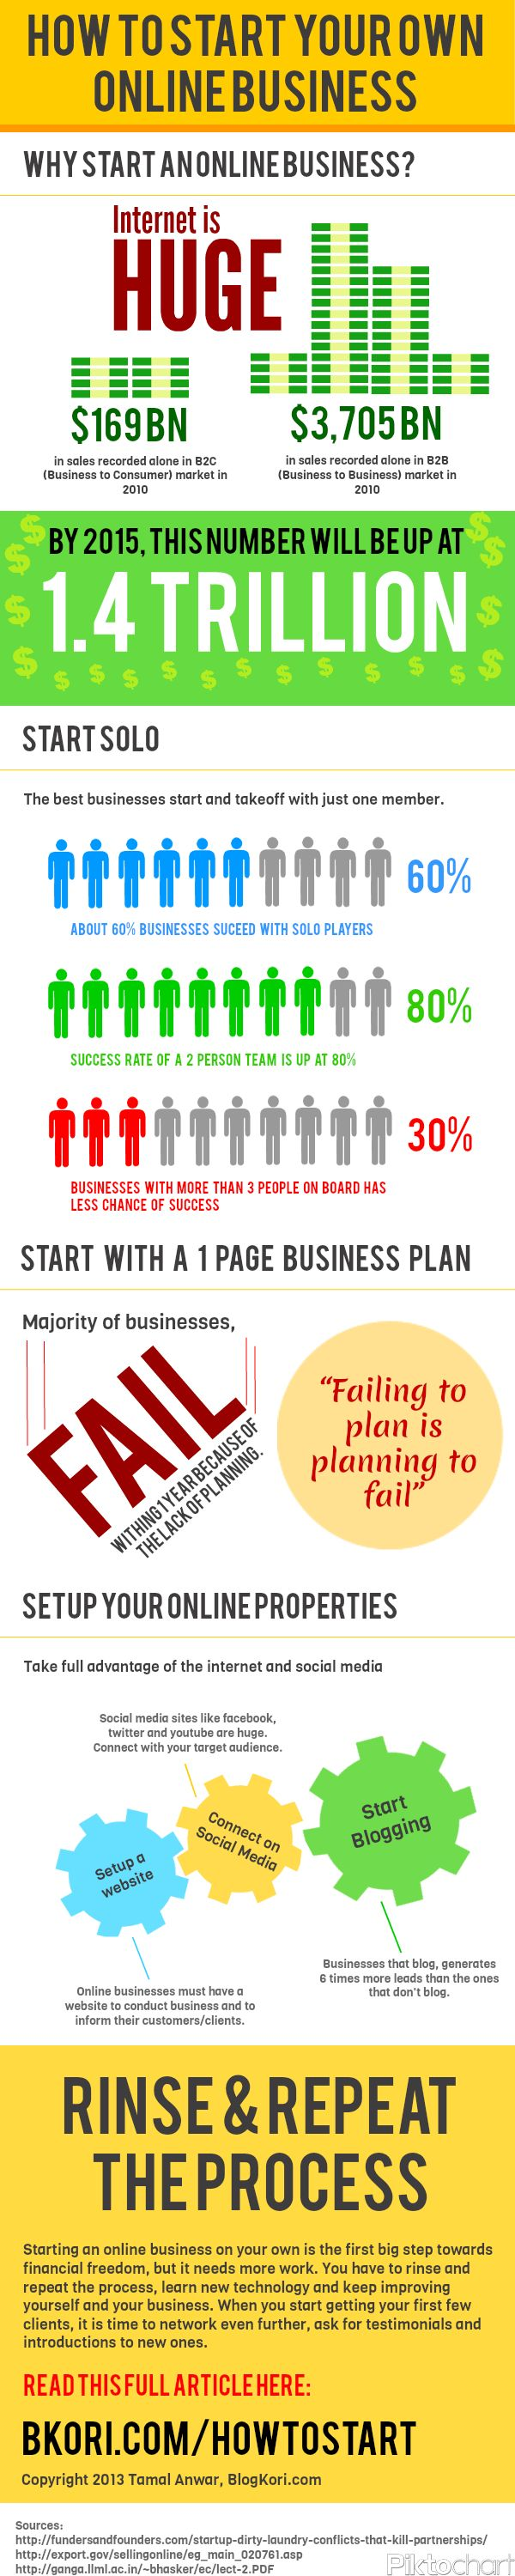 How to Start Your Own Online Business in 2013 (Infographic)